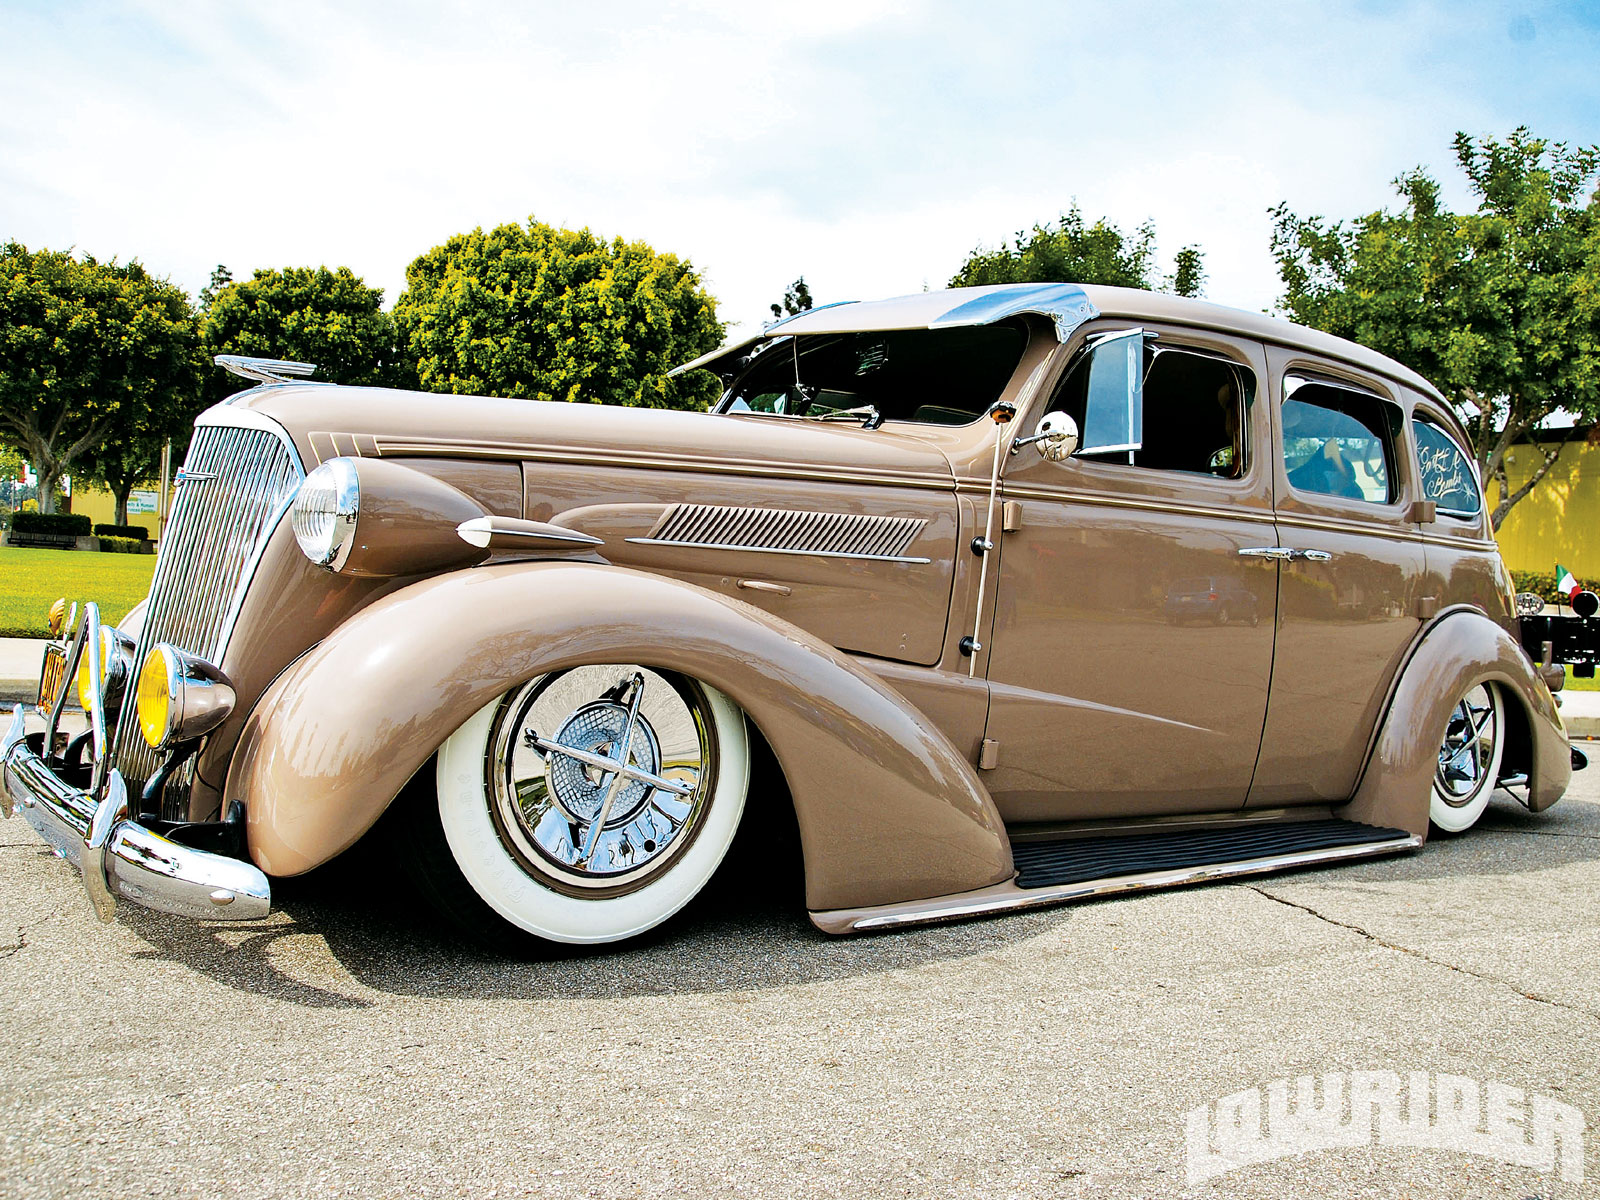 Lowrider Rims And Tires >> 1937 Chevrolet Master Deluxe - Lowrider Magazine